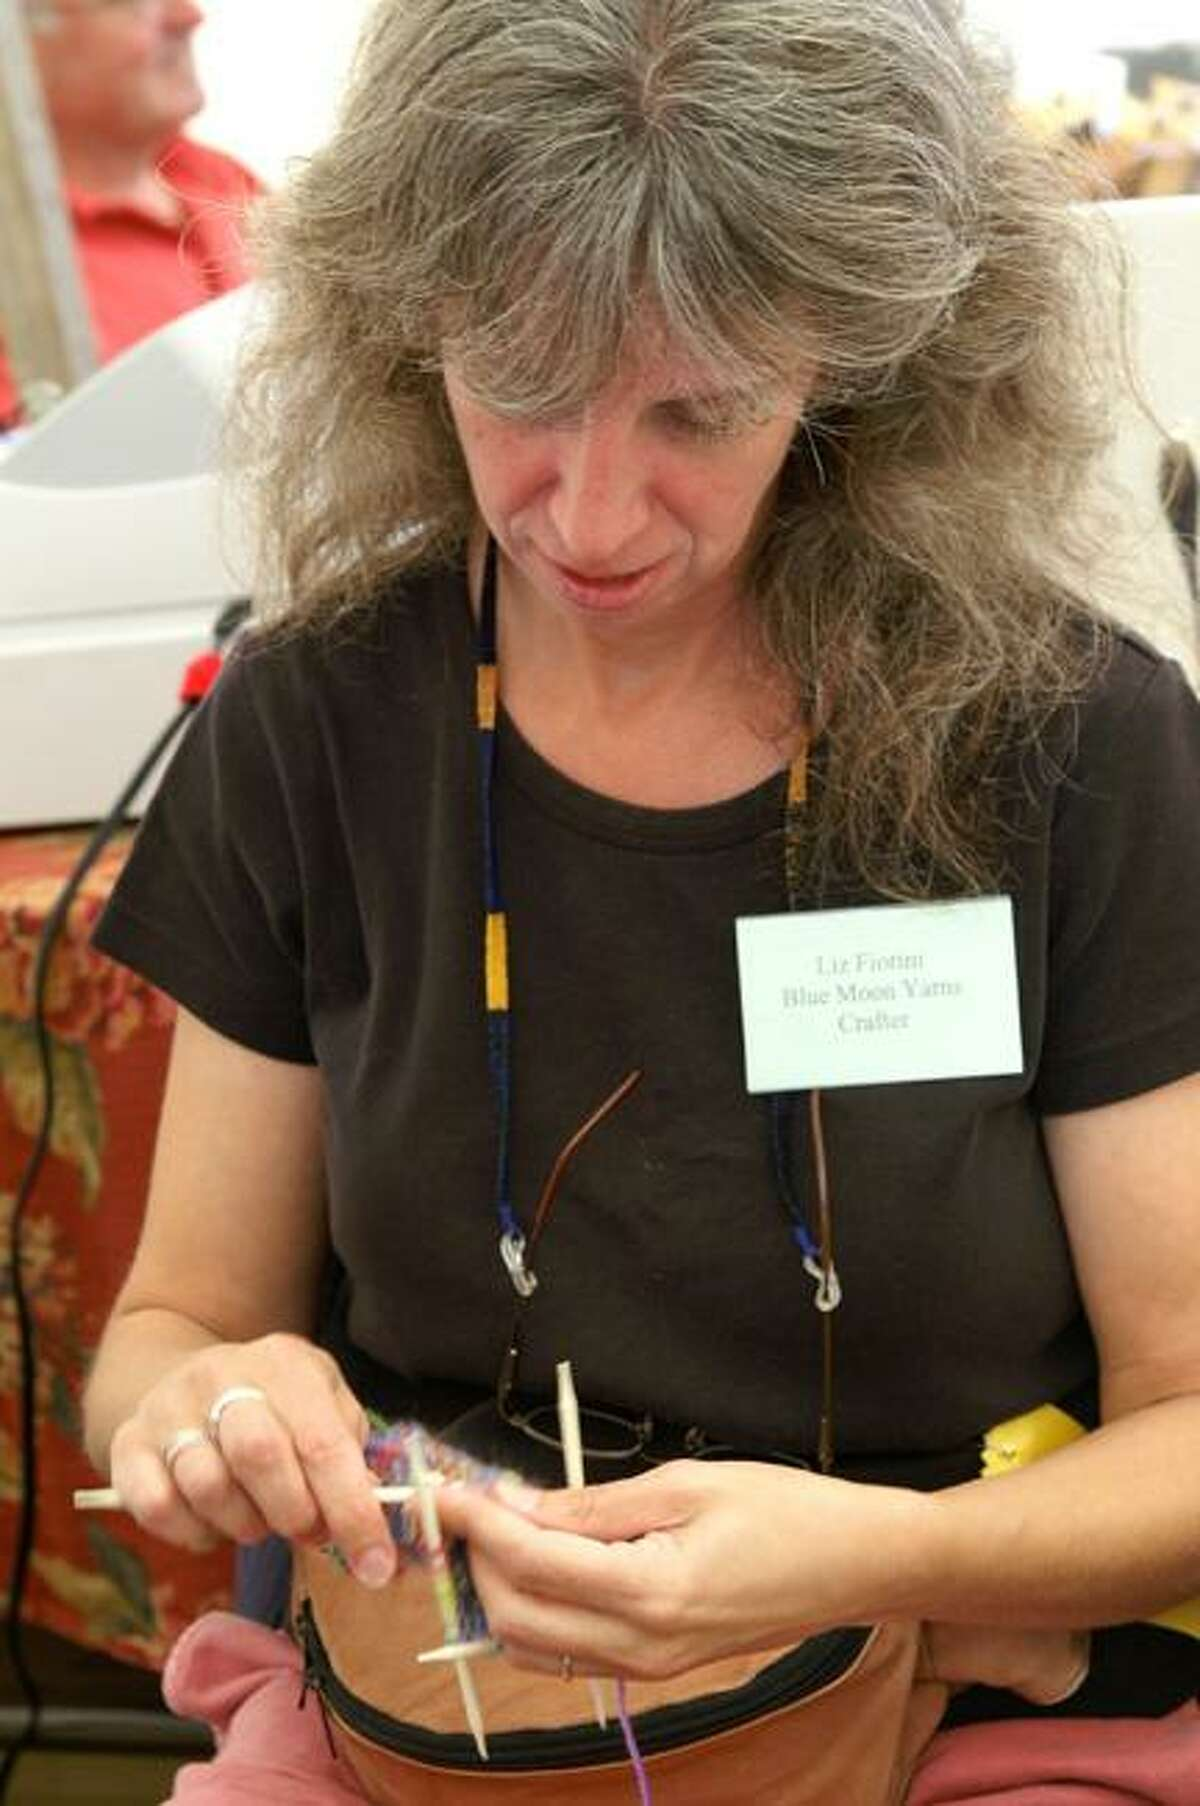 Photo Courtesy Madison County Historical Society Liz Fiorini, of Blue Moon Yarns, in Delanson, N.Y. will be returning to the Madison County Historical Society's 47h Annual Craft Days on Sept. 10 (10 a.m. to 5 p.m.) and Sept. 11 (10 a.m. to 4 p.m.).